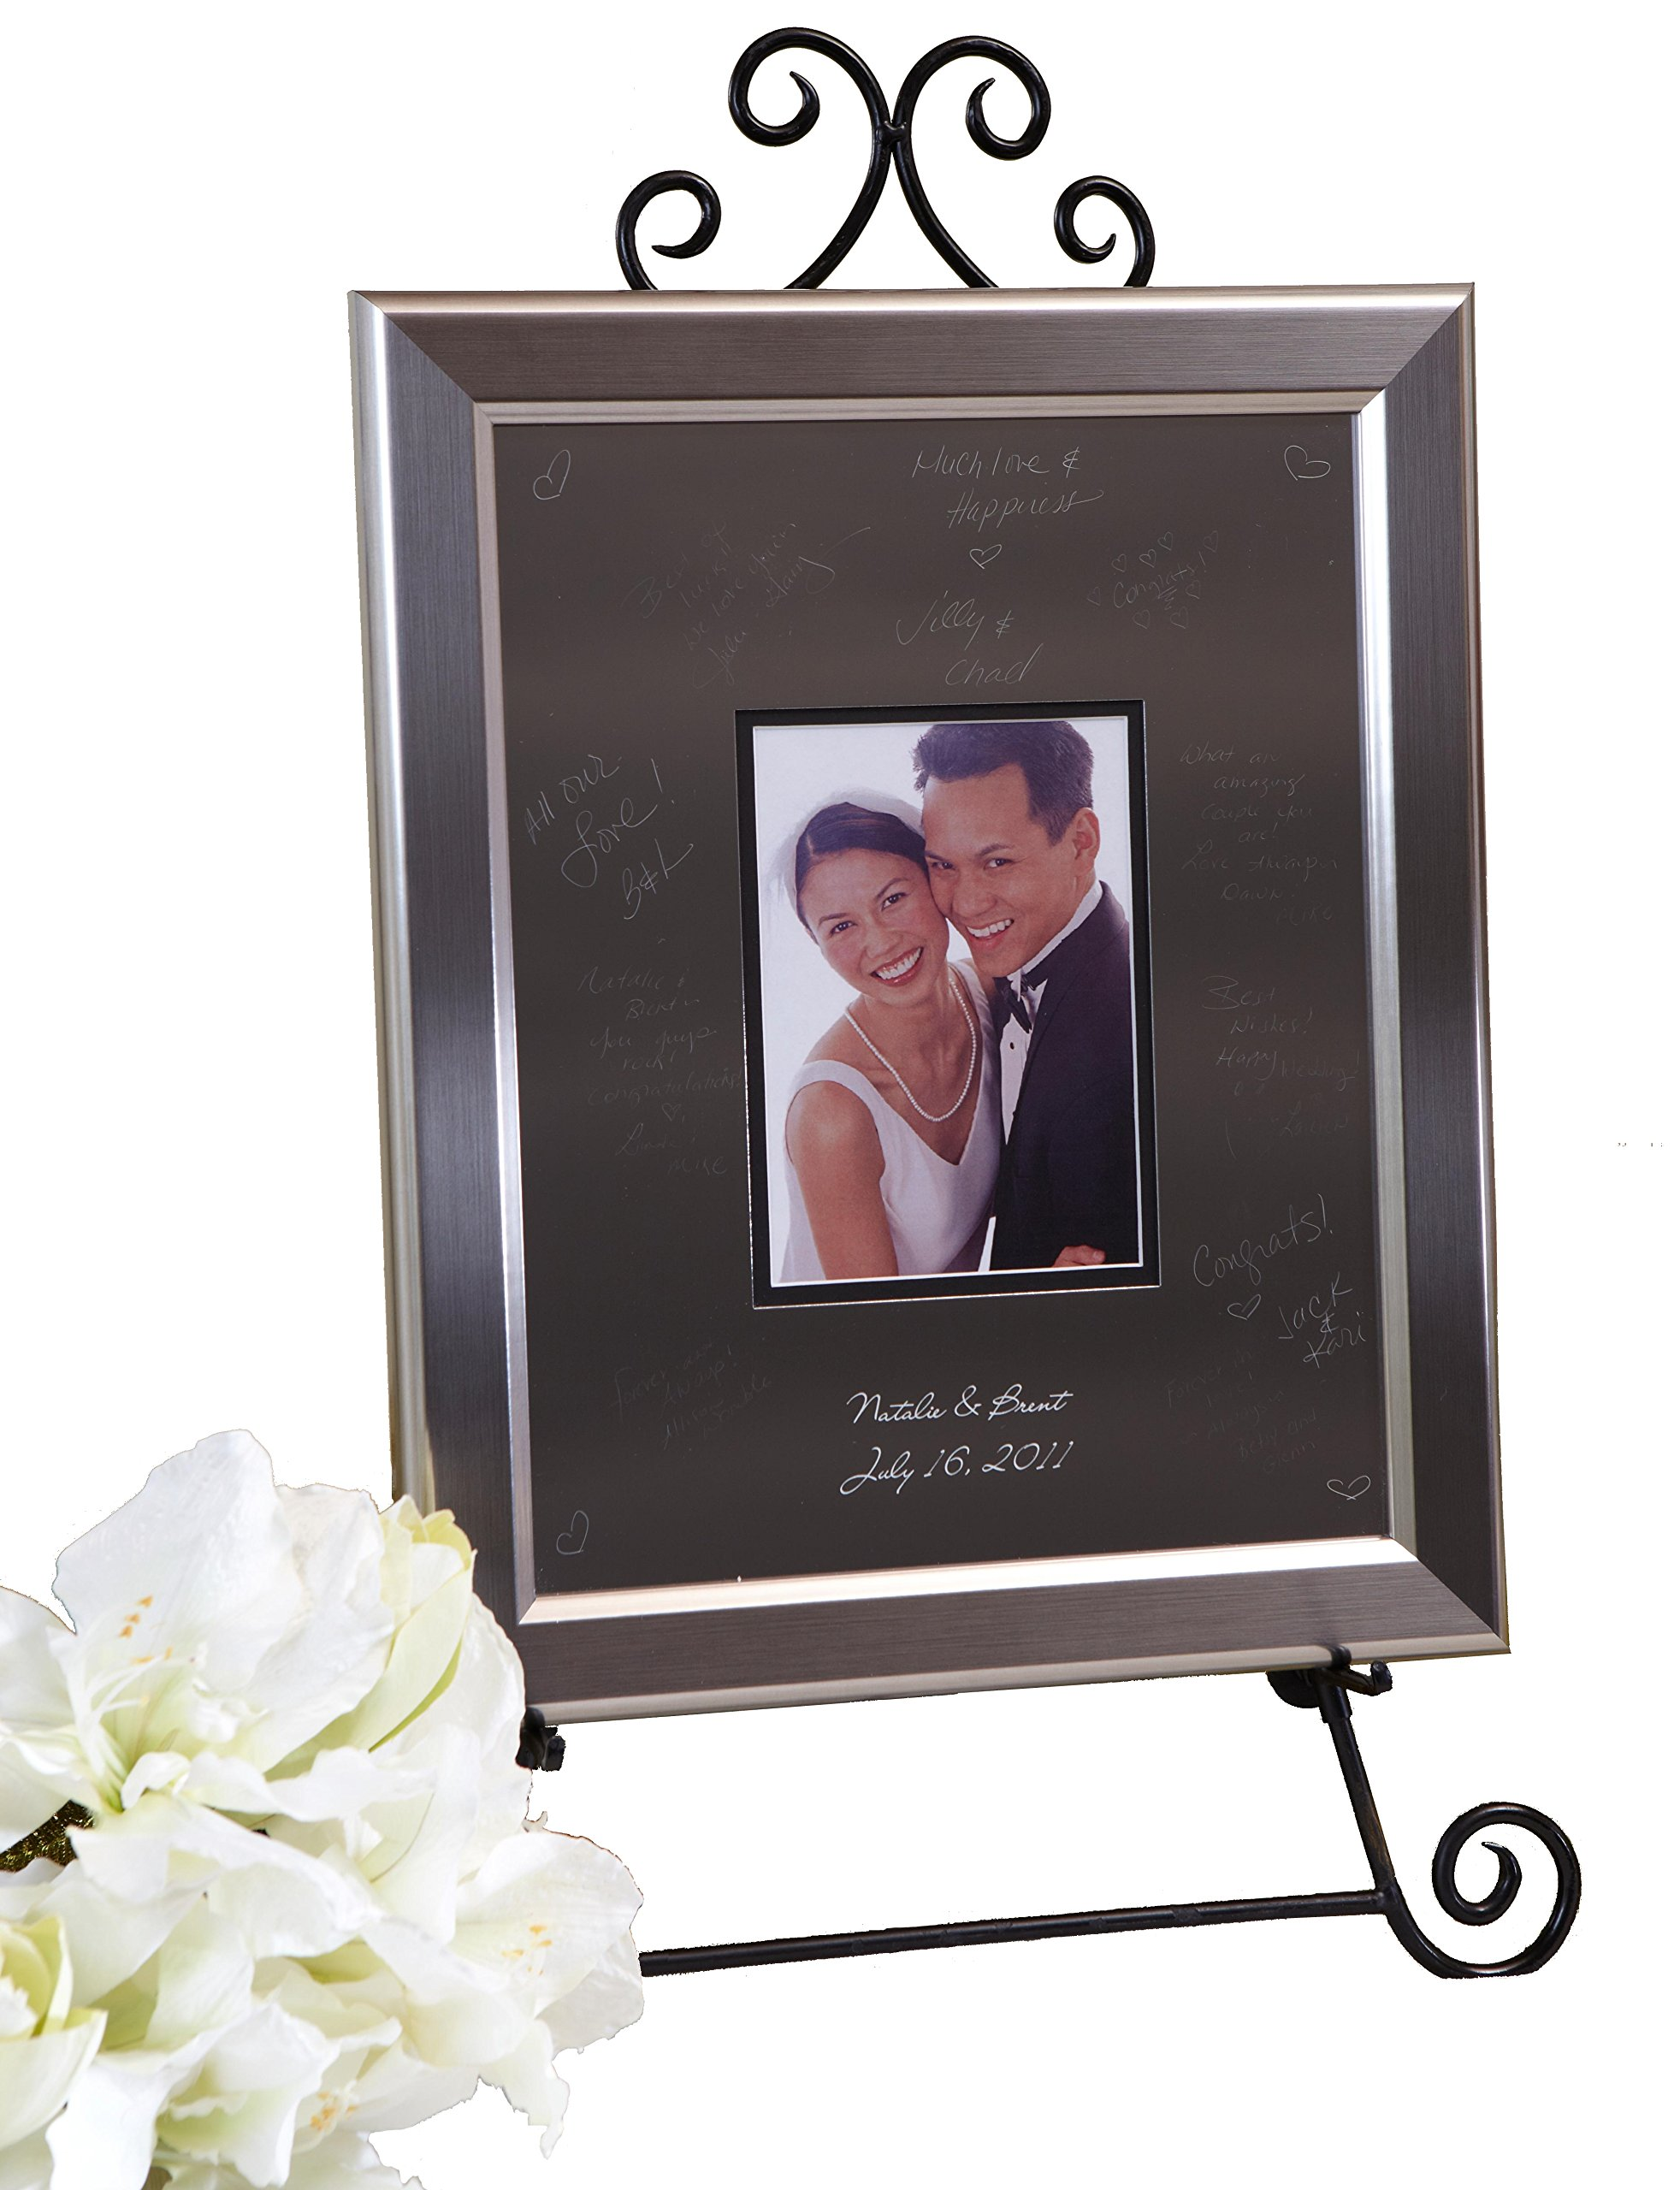 Signature Keepsakes Frame Engravable Signature Mat Guest Book, Large, Silver/Titanium by Signature Keepsakes